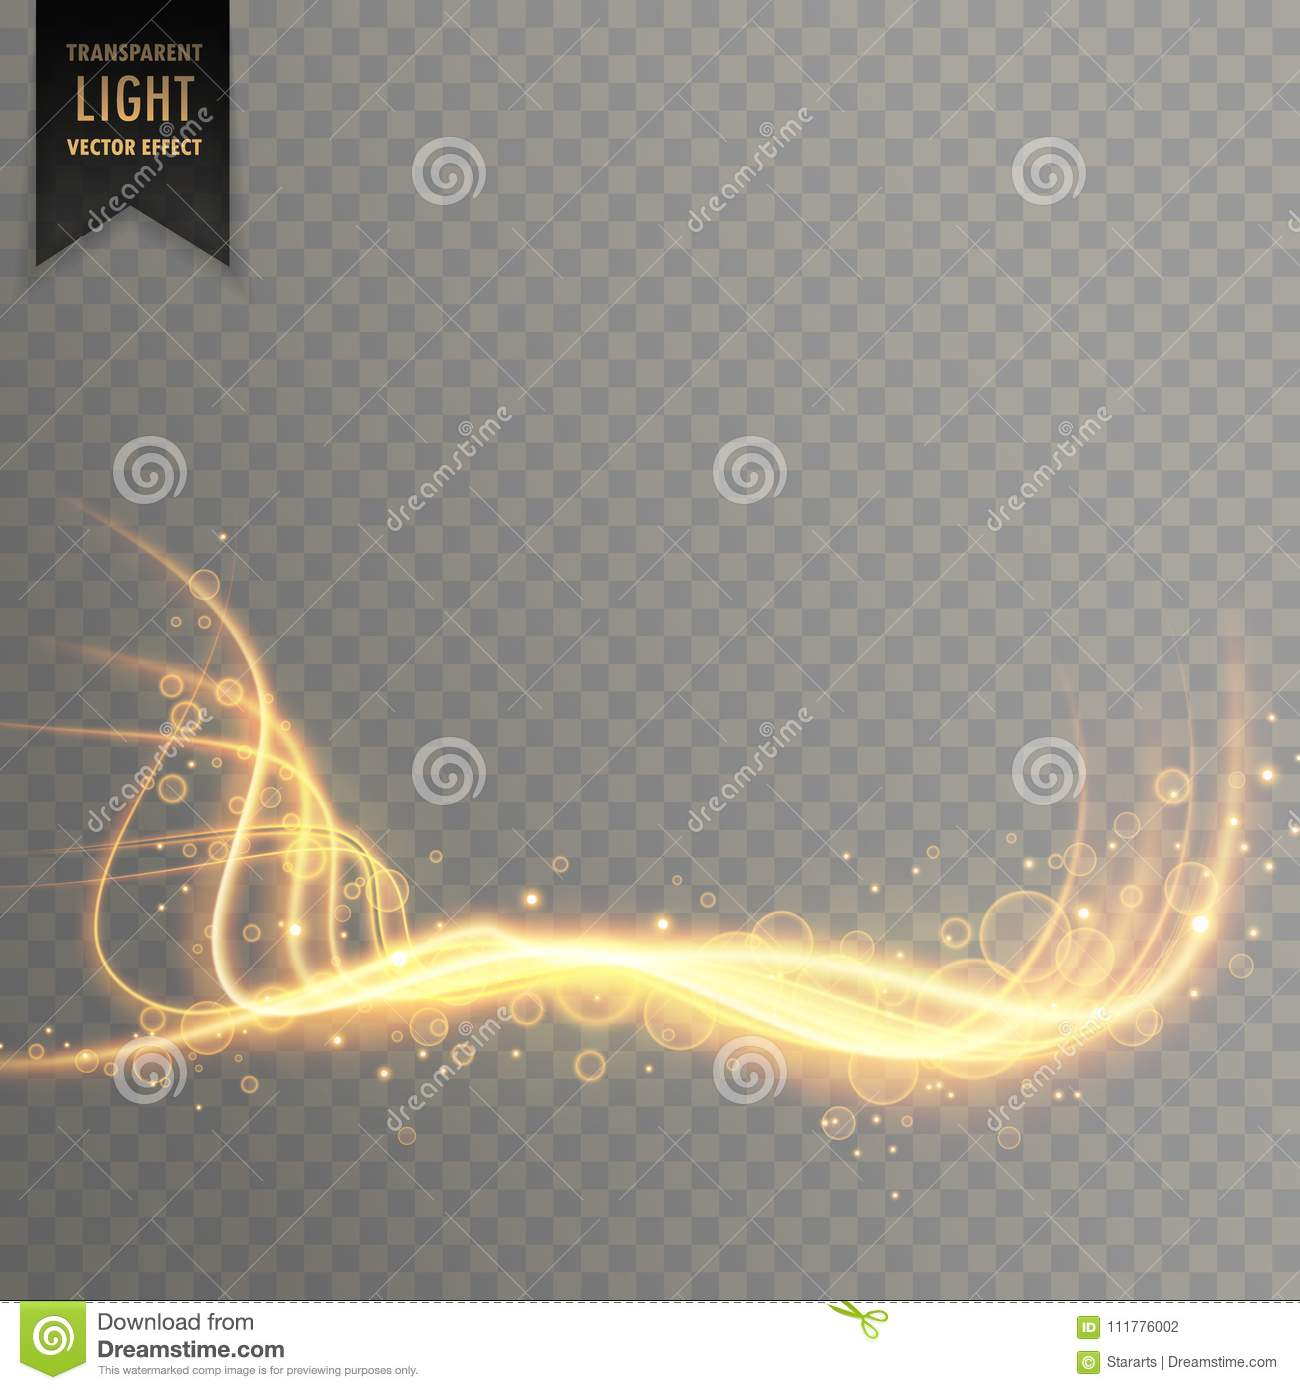 Transparent gold light lines with sparkles